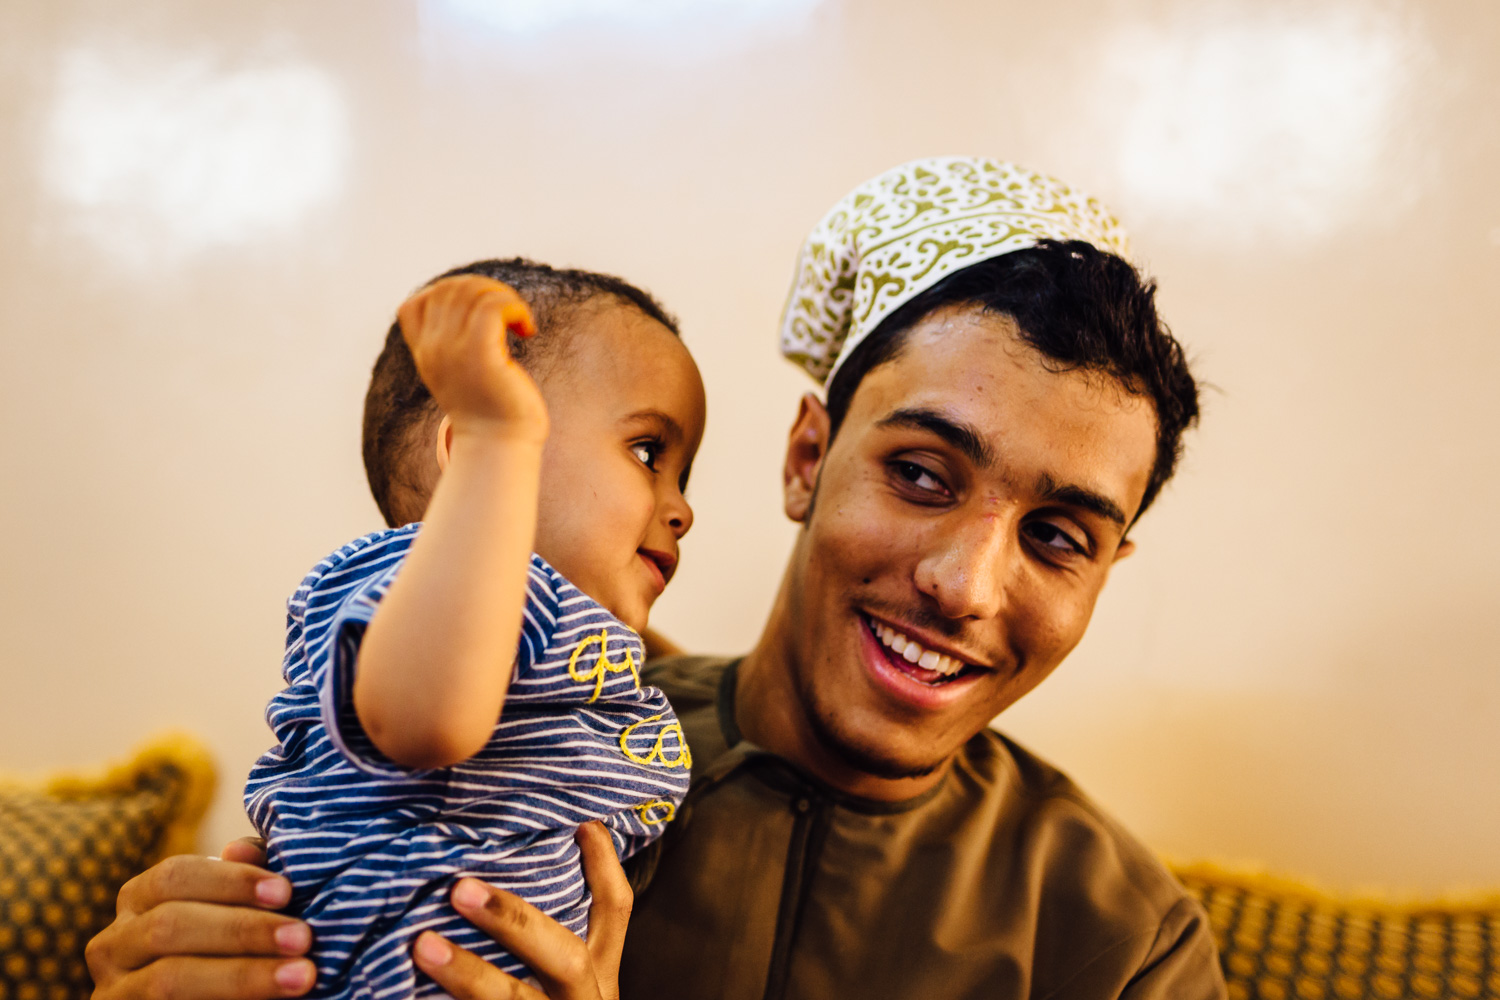 Child-Interaction-Tradition-Village-Oman-Daniel-Durazo-Photography-Durazophotography